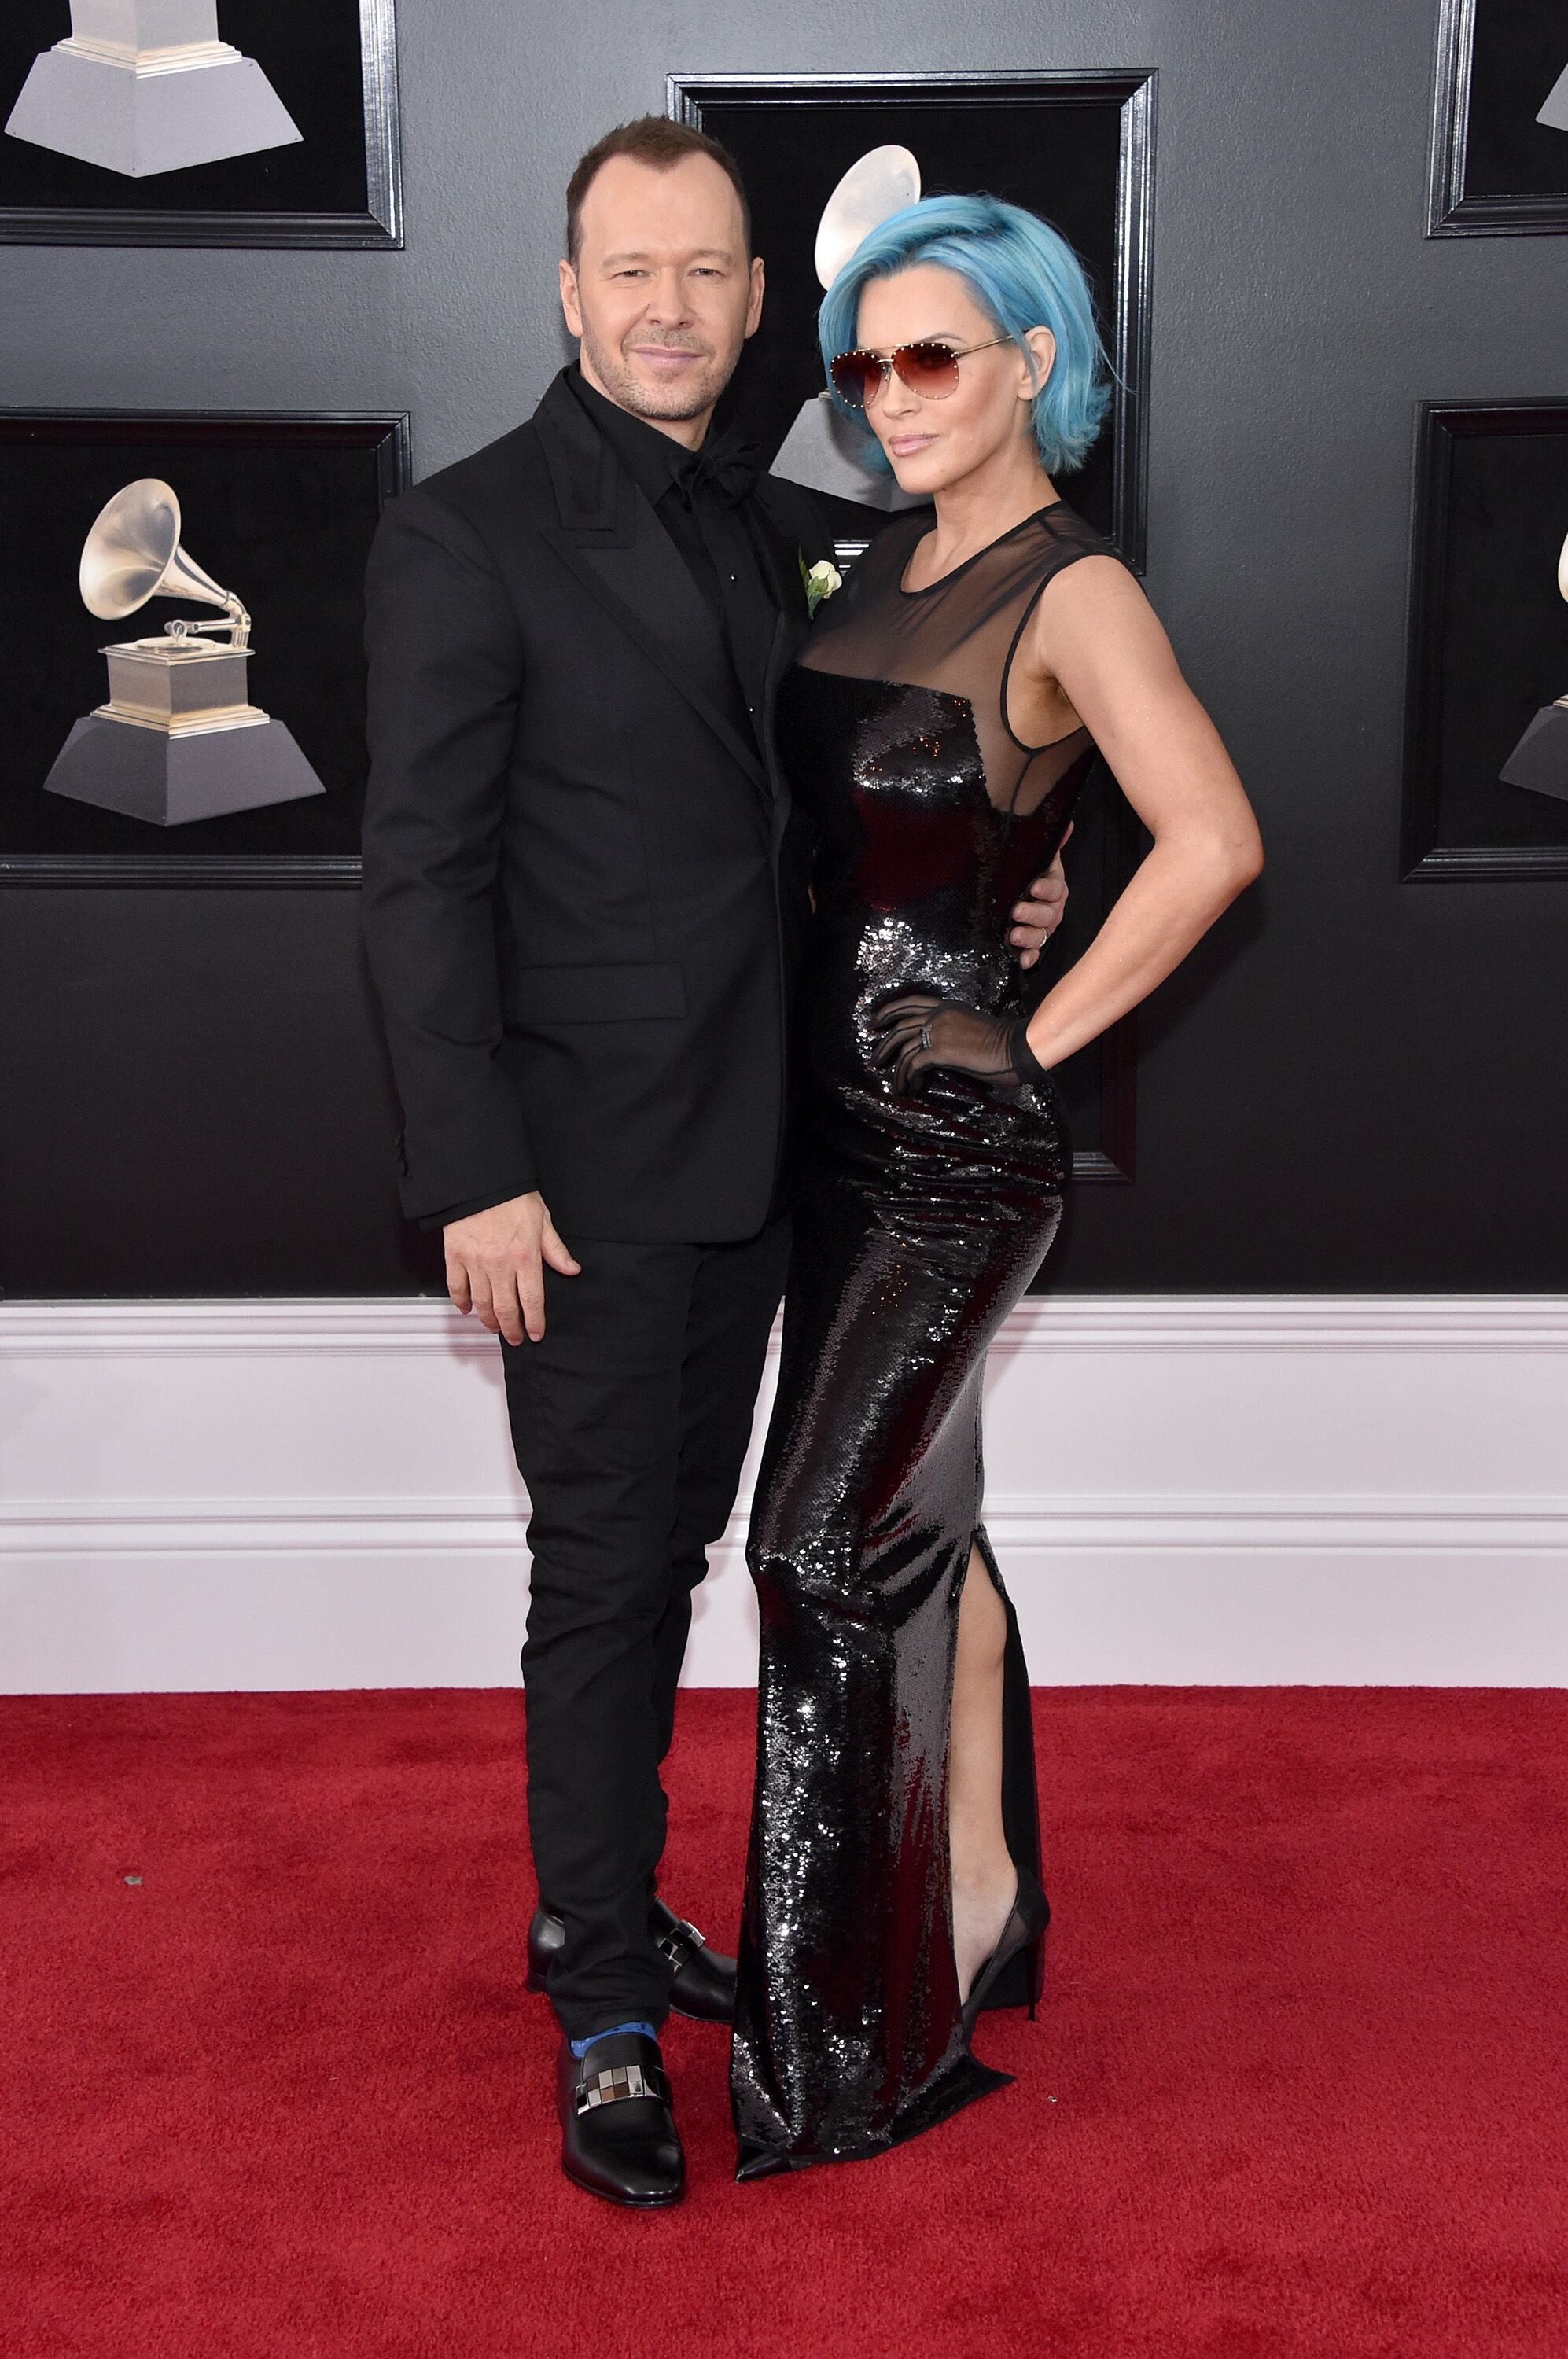 Donnie Wahlberg and Jenny McCarthy attend the 60th Annual GRAMMY Awards on January 28, 2018. | Source: Getty Images